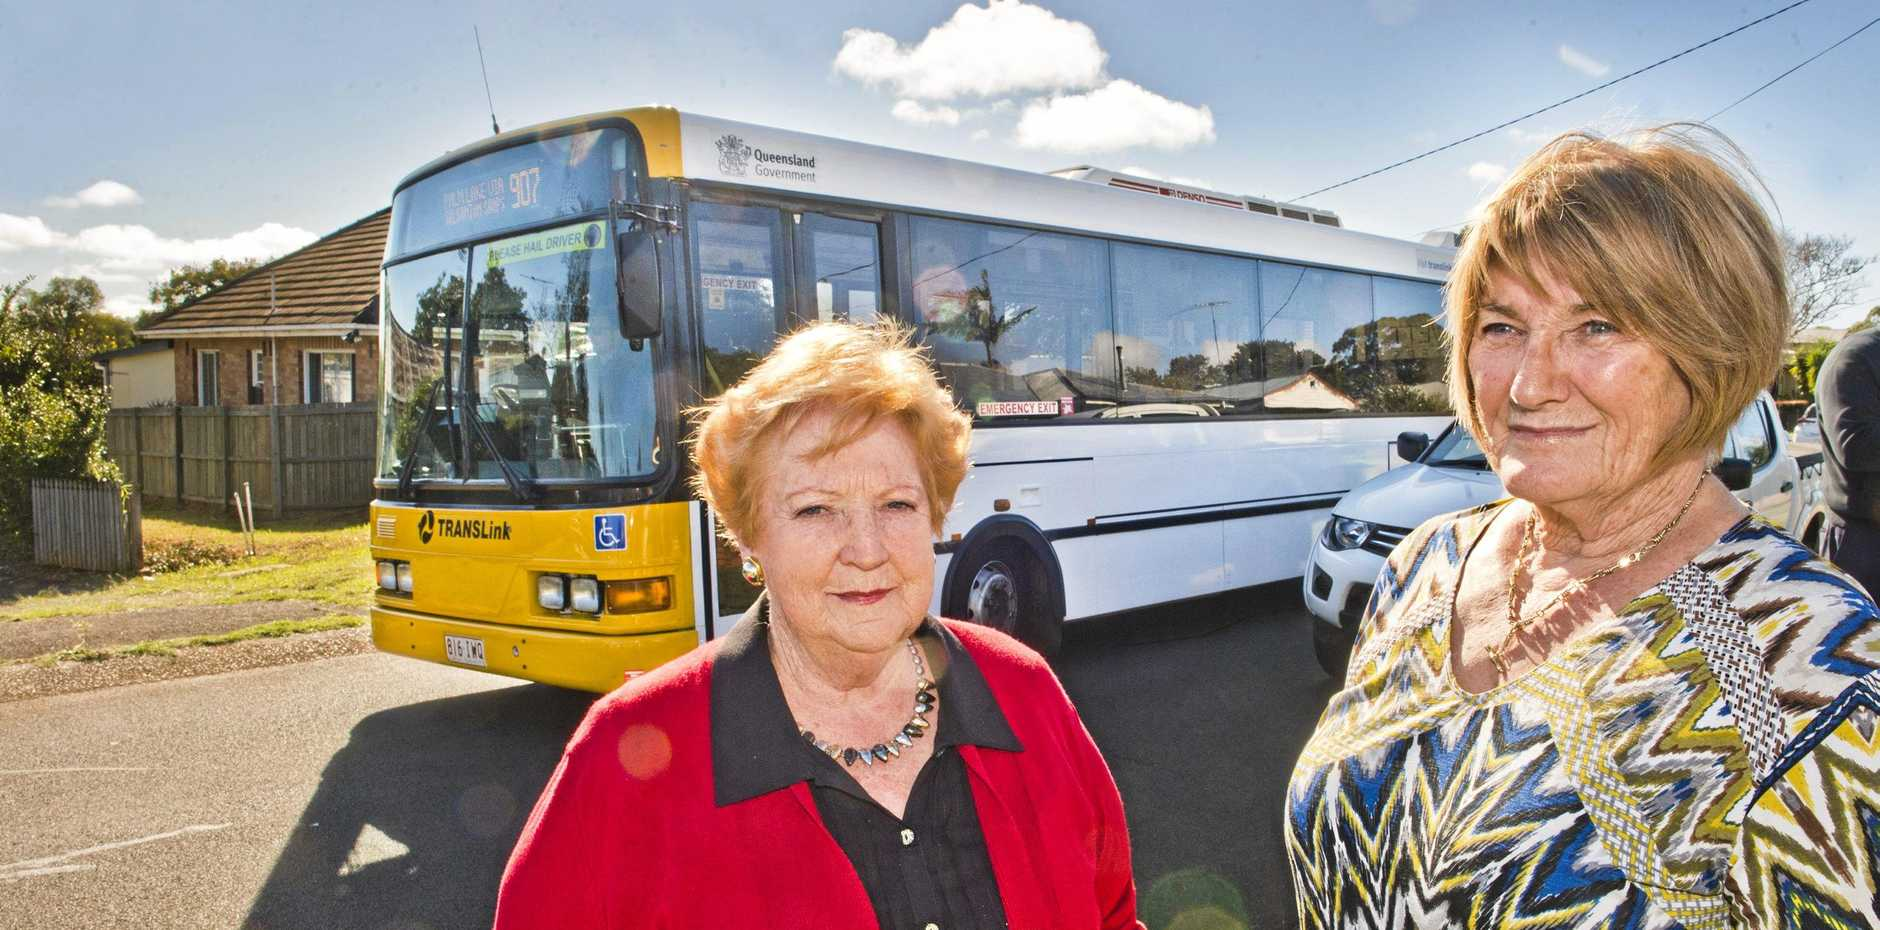 NOT HAPPY: Rosemary Morley (left) and Avondale St resident Bernice Reis want to see the 907 bus routed away from Avondale St.